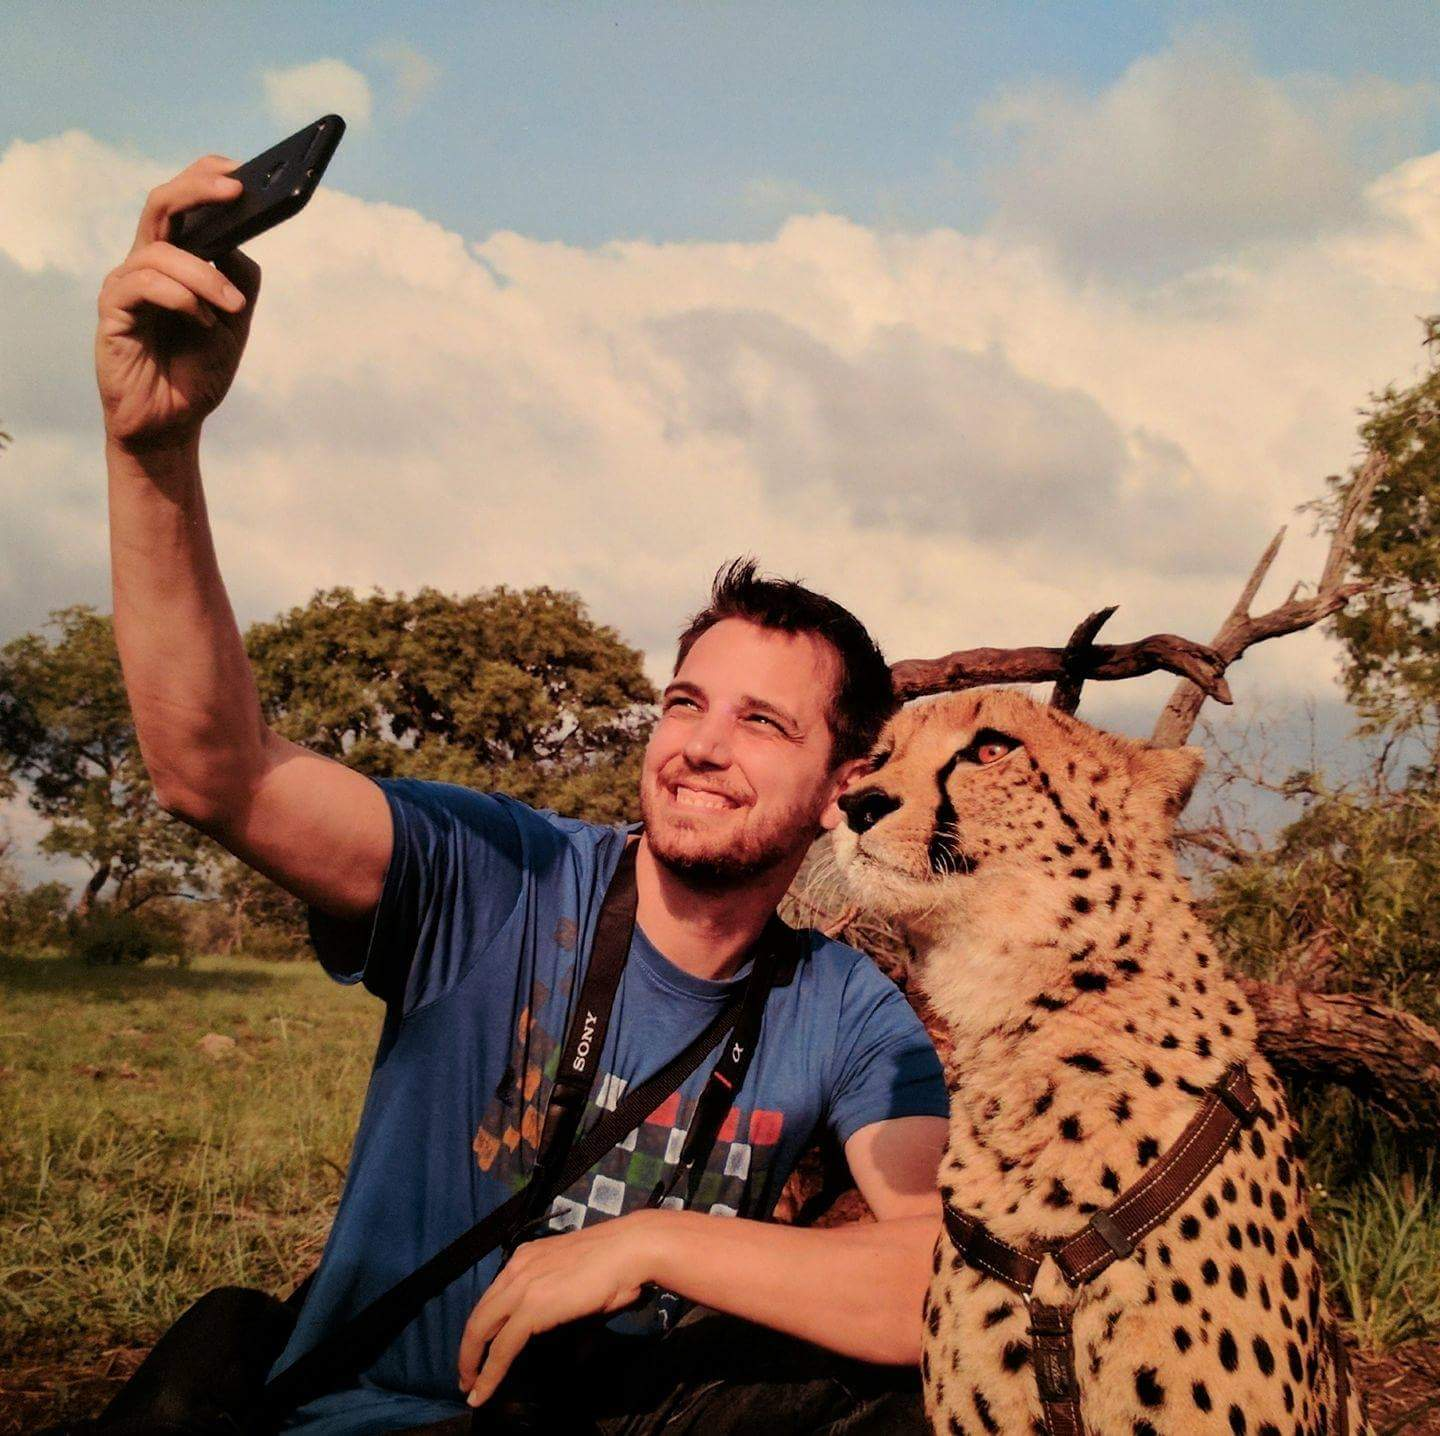 My buddy taking a selfie with a cheetah.